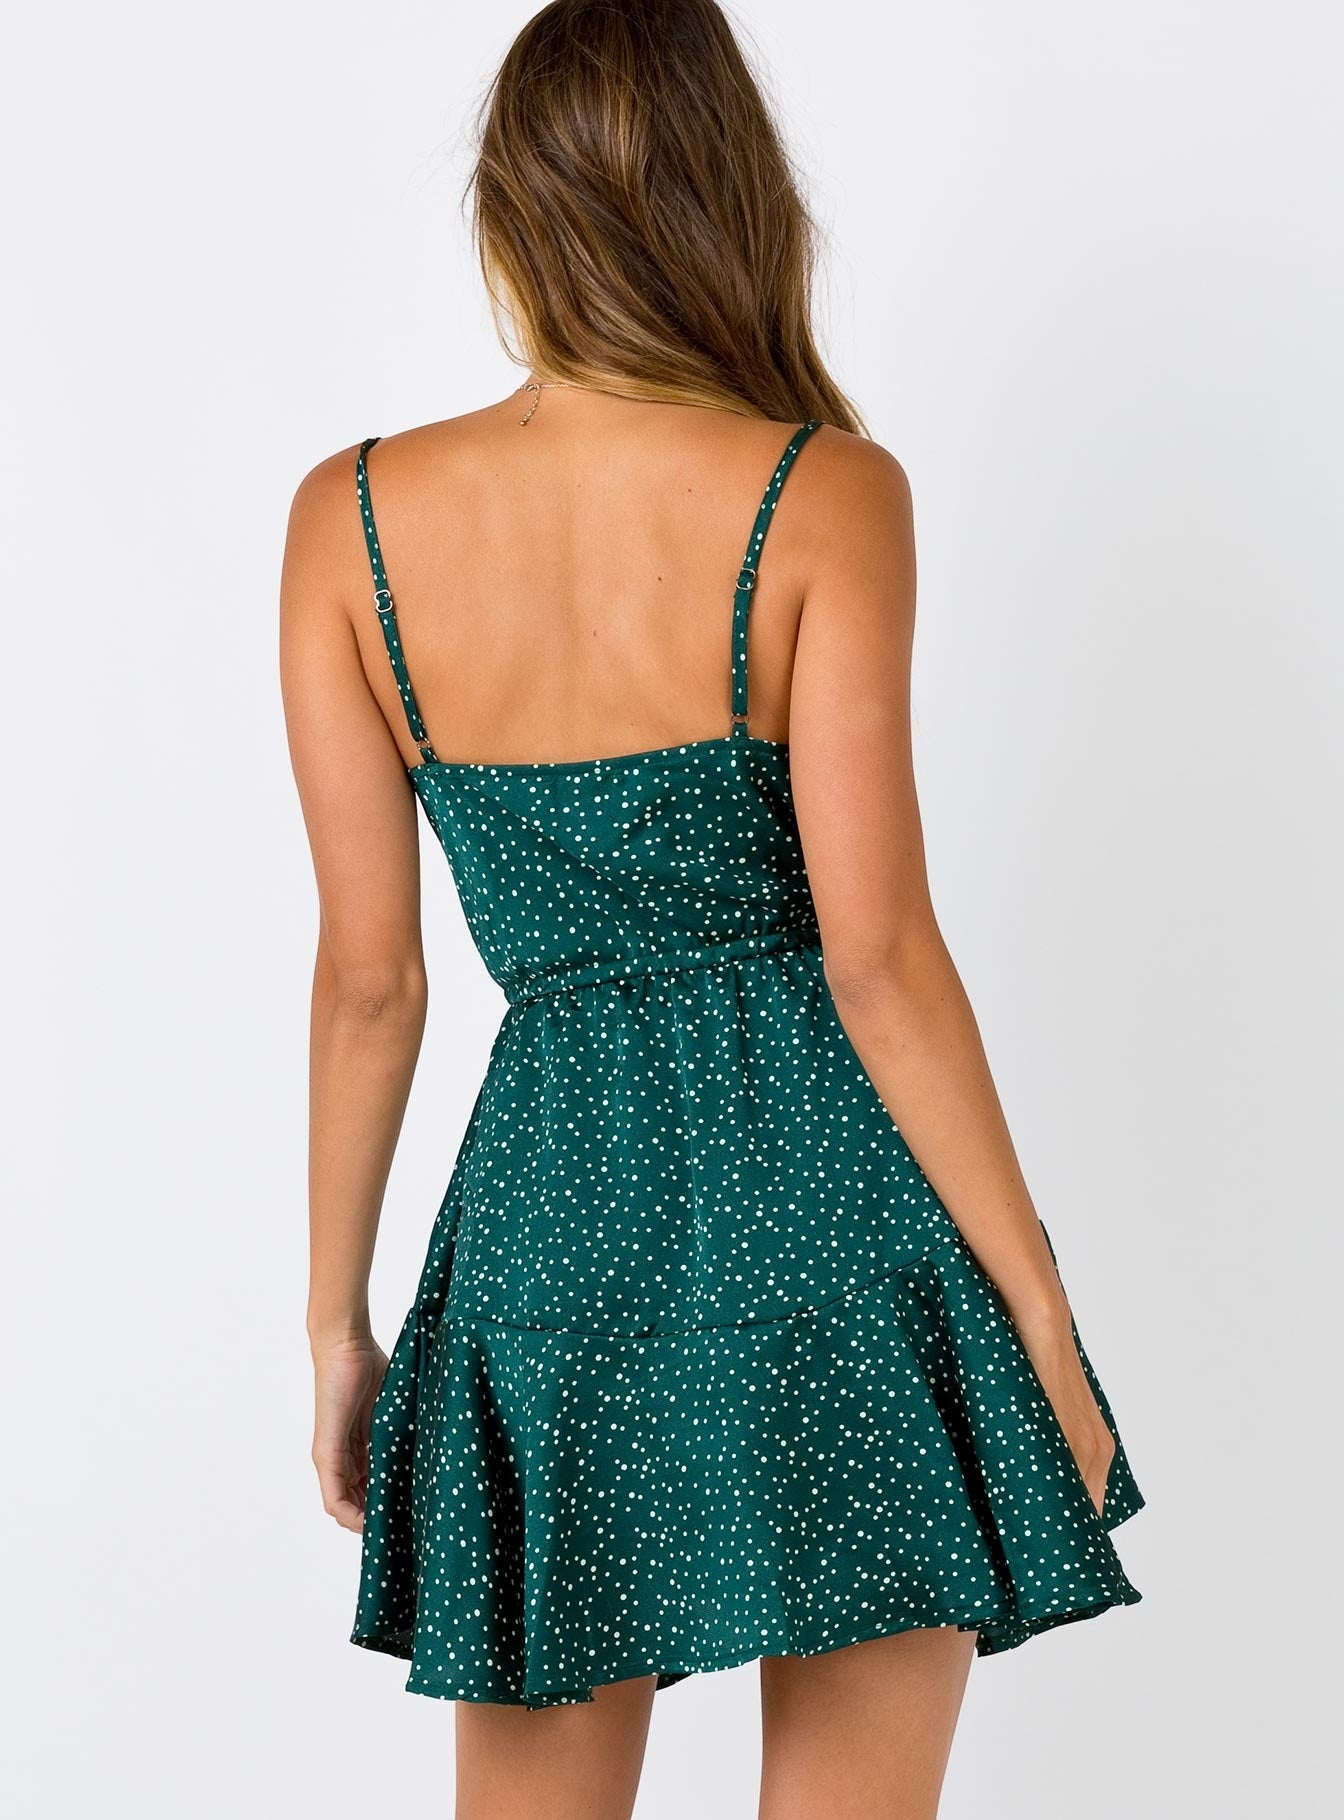 The Daizie Mini Dress Green